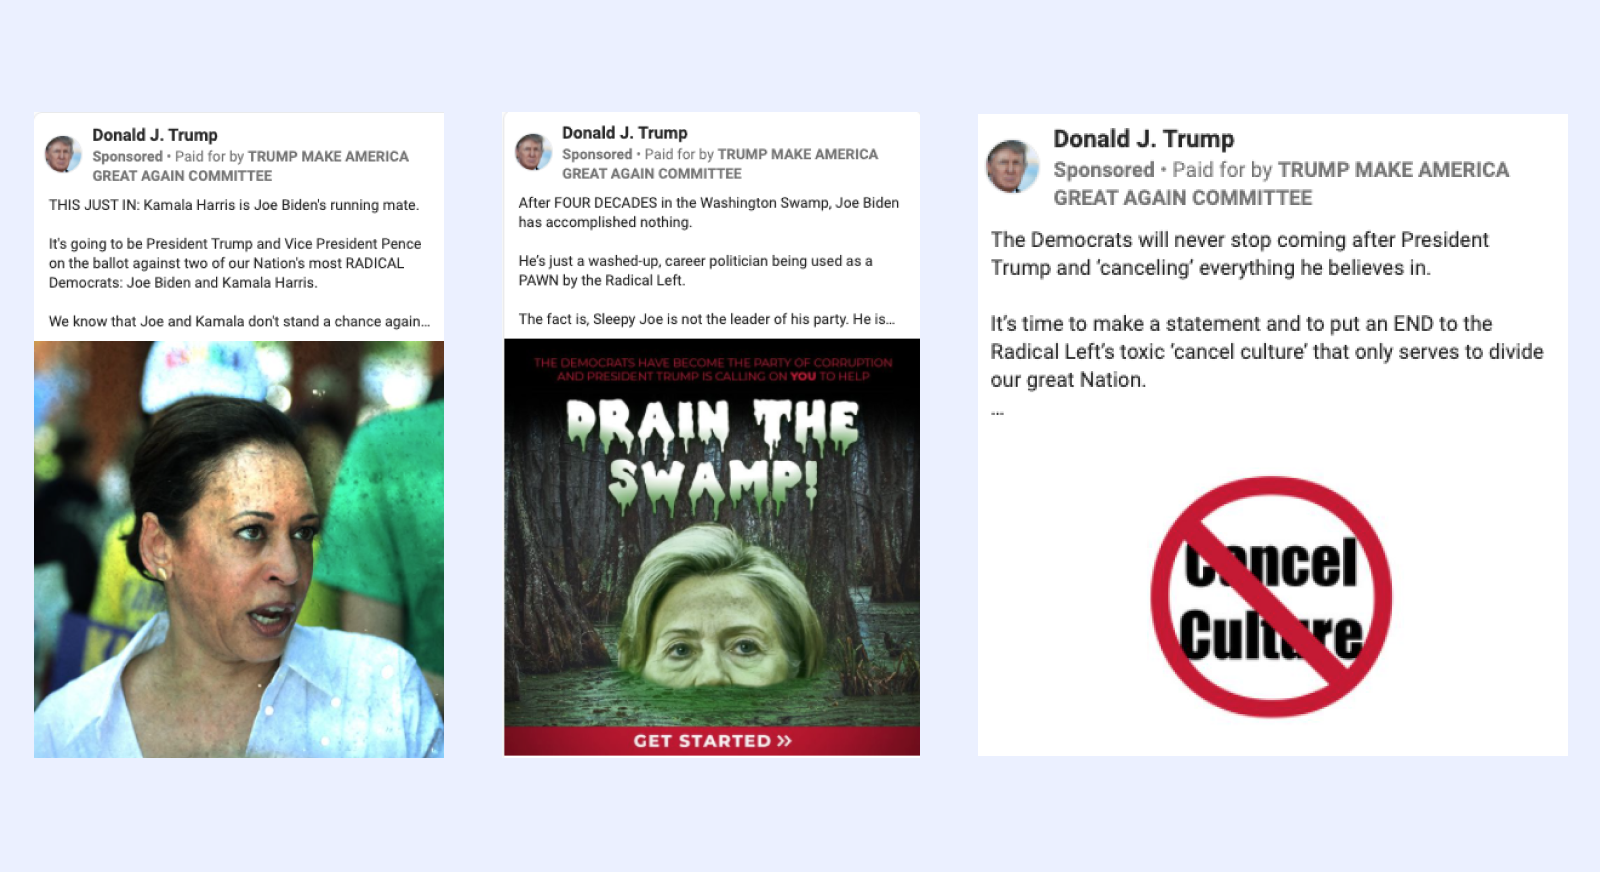 Three Facebook ads from Donald Trump depicting Kamala Harris, Hillary Clinton, and the concept of Cancel Culture.